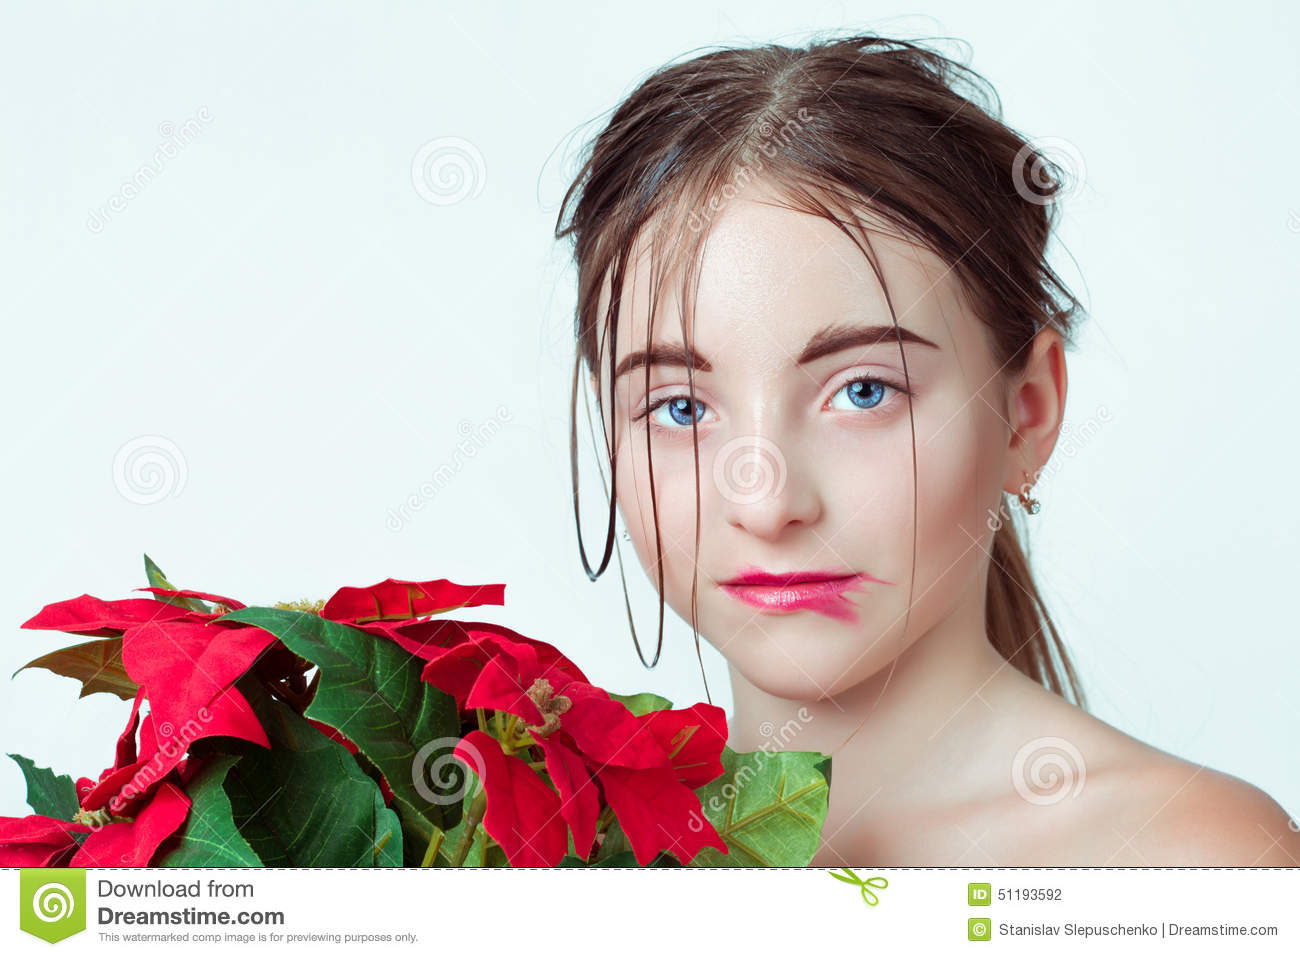 Beauty portrait of young girl. Morning image with the effect of wet face. The girl in the hands holding a red flower.